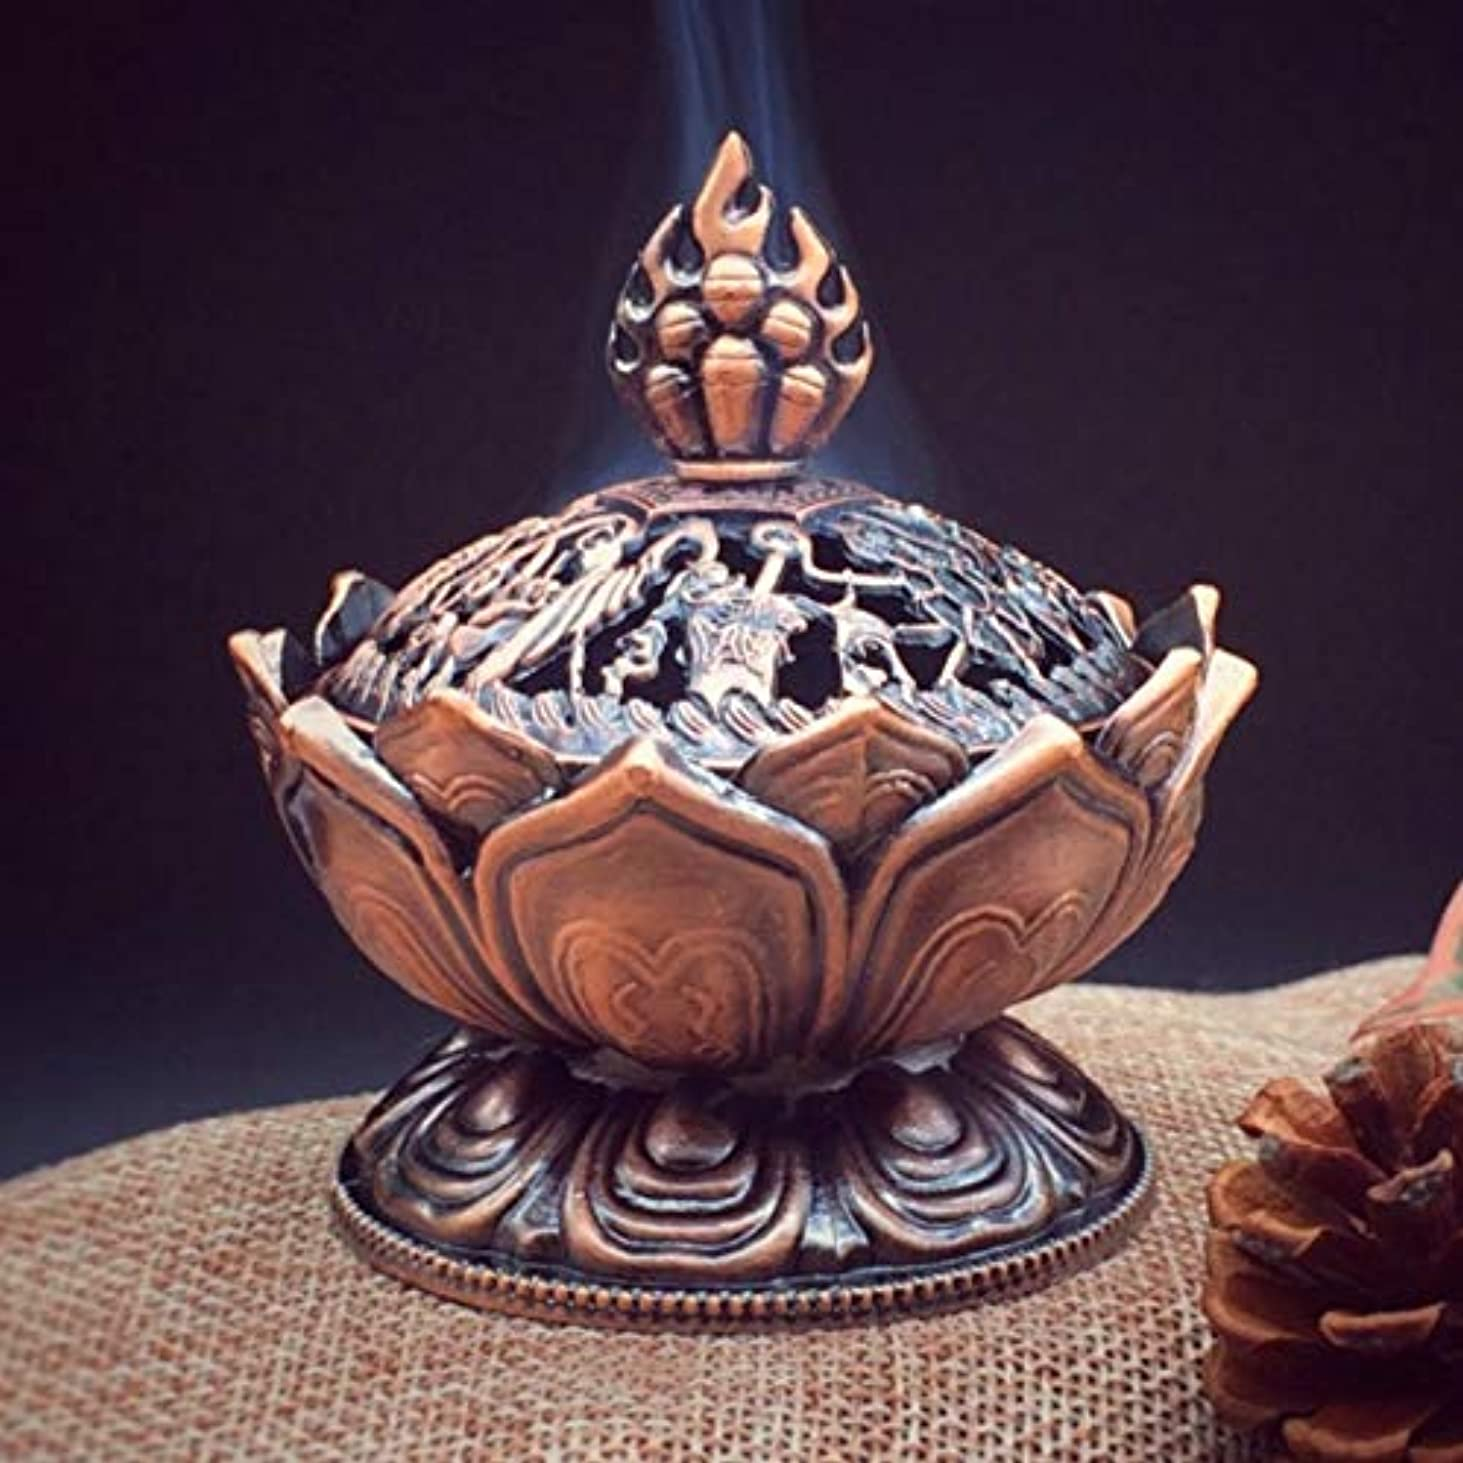 たらいハドル集まるHoly Tibetan Lotus Designed Incense Burner Zinc Alloy Bronze Mini Incense Burner Incensory Metal Craft Home Decor